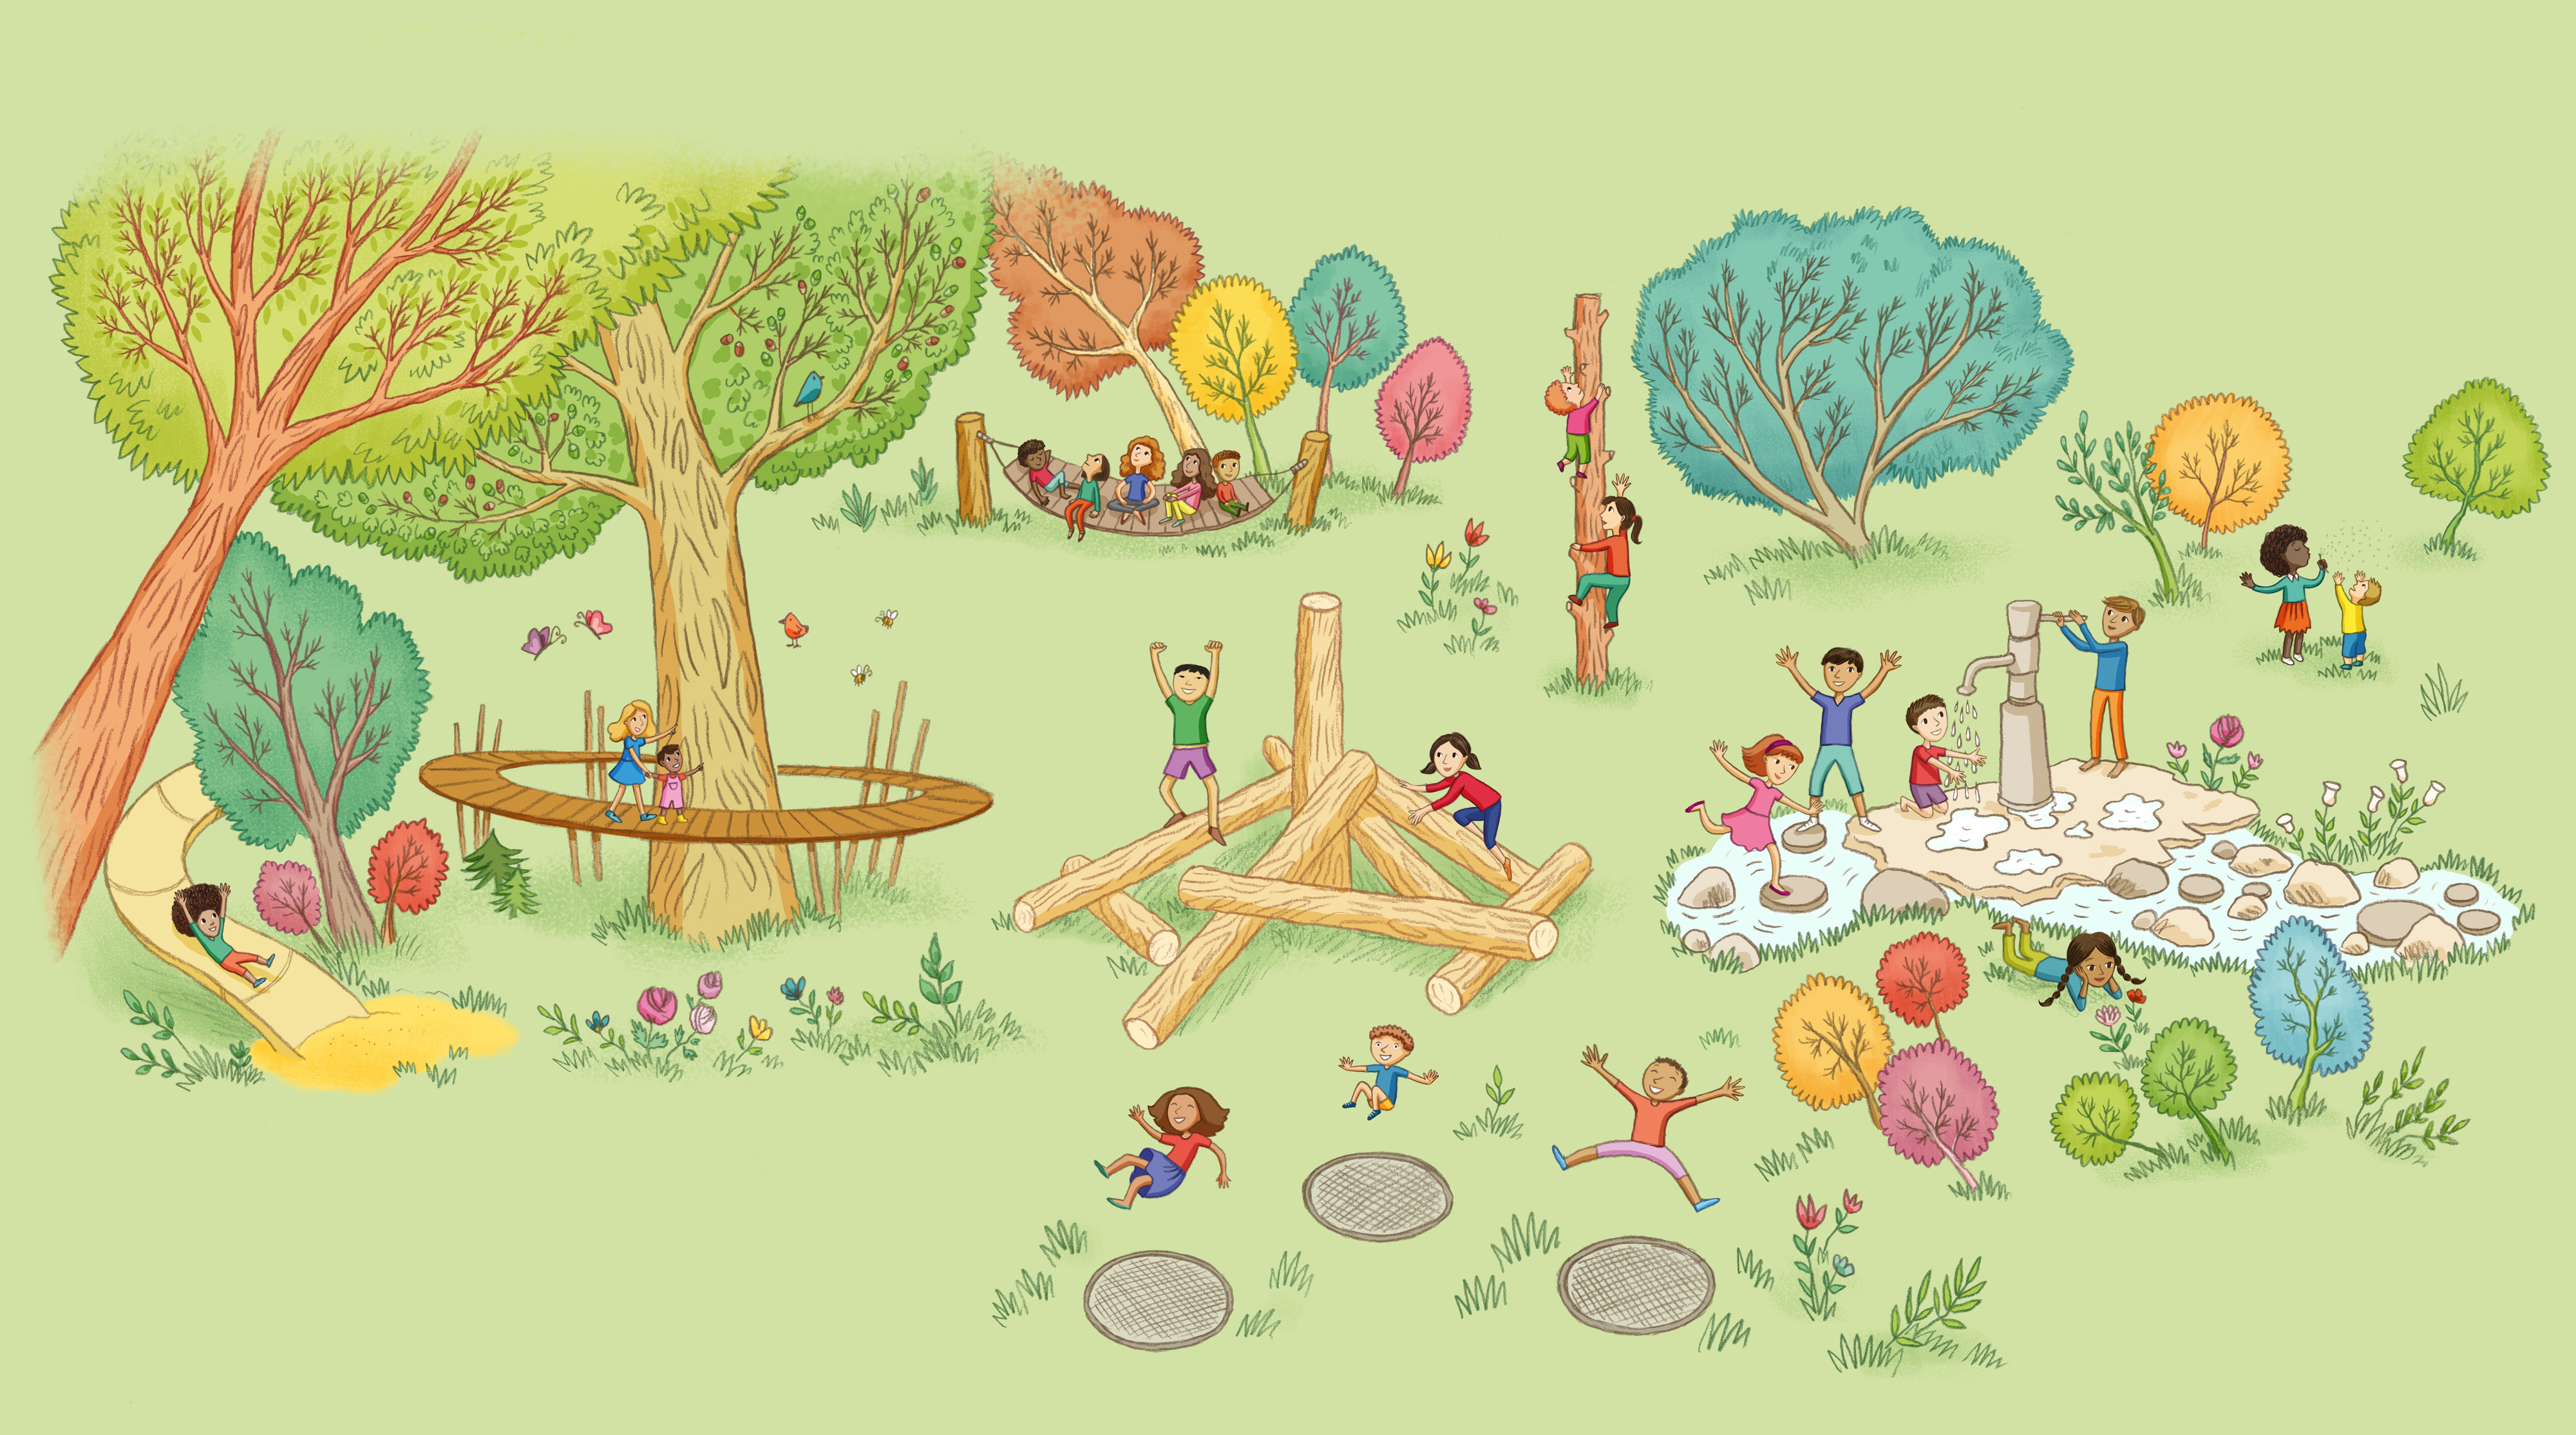 An illustration of children playing in the new children's garden